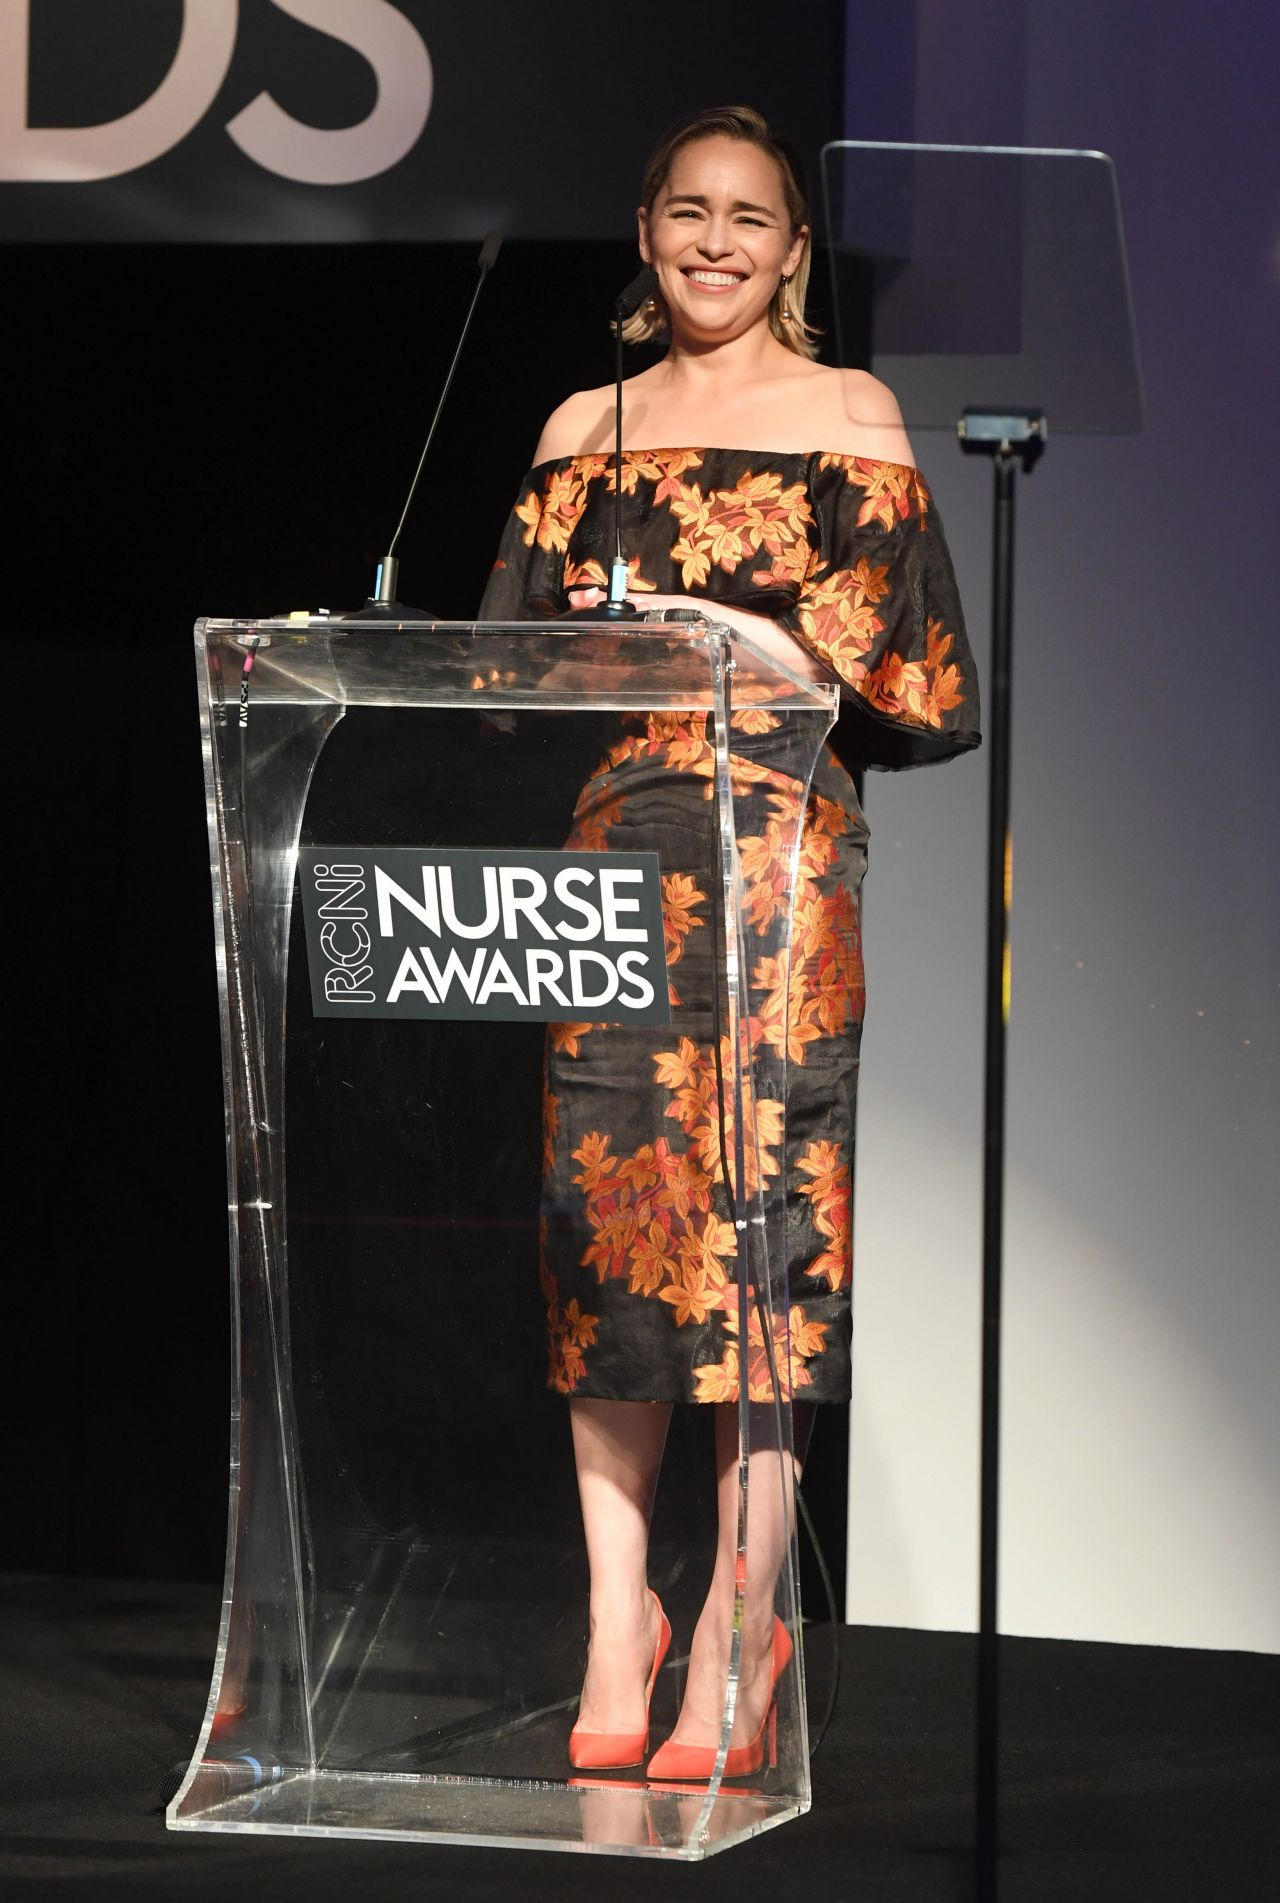 https://celebmafia.com/wp-content/uploads/2018/07/emilia-clarke-nurse-of-the-year-awards-2018-in-london-2.jpg